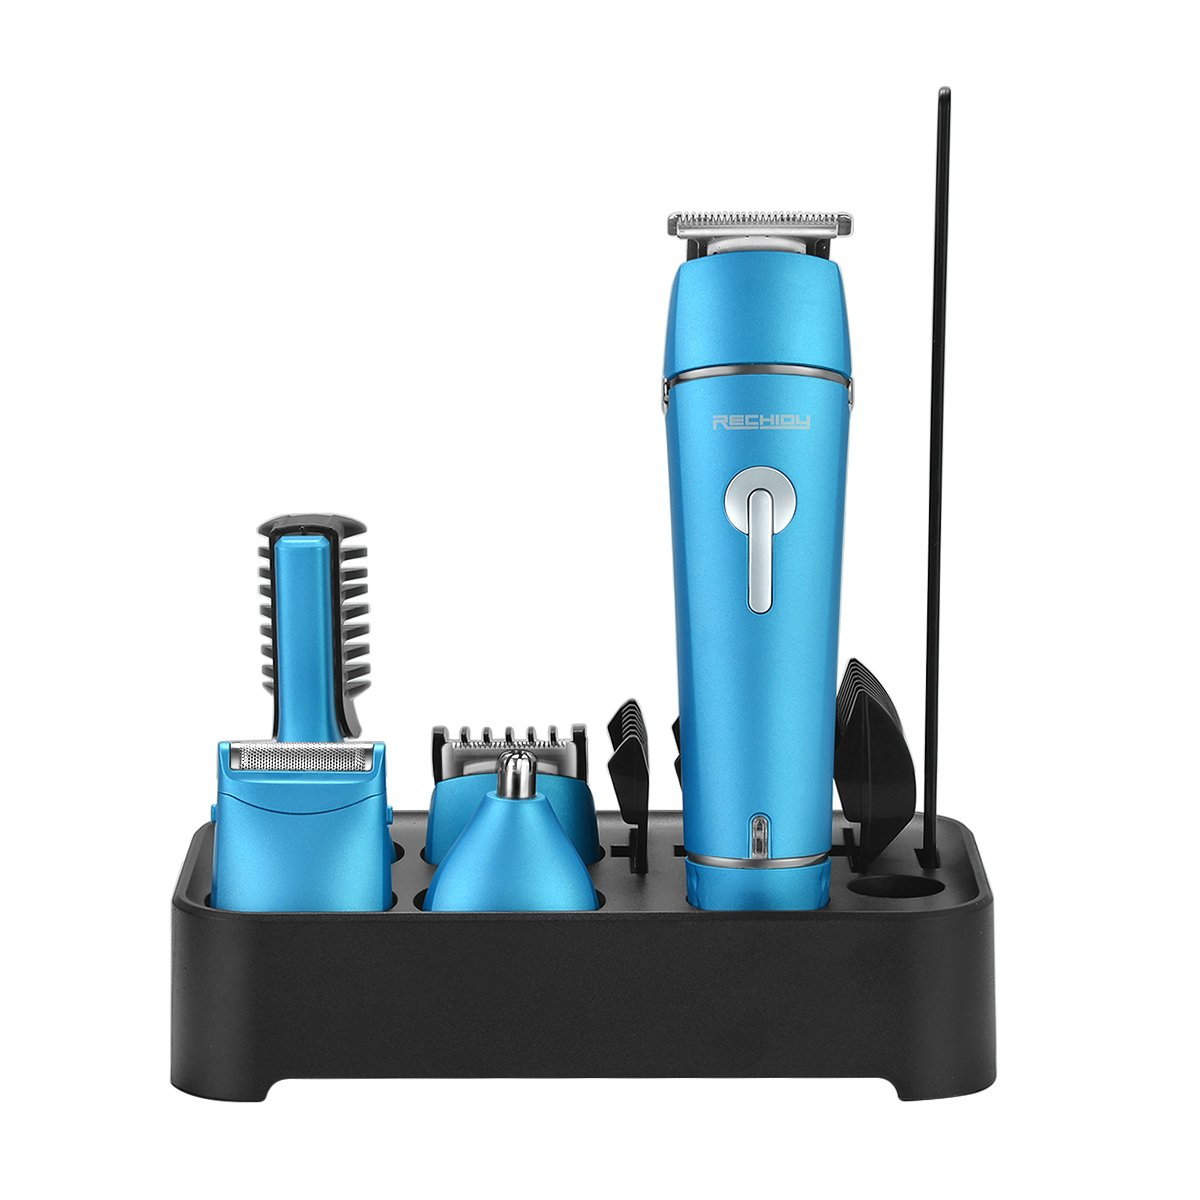 Hair Grooming Kit for Men Women Hair Clippers Beard Mustache Trimmer Nose Hair Eyebrow Trimmer Sideburn Precision Trimmer Professional 5 in 1 Rechargeable Electric Hair Removal Kit Cordless